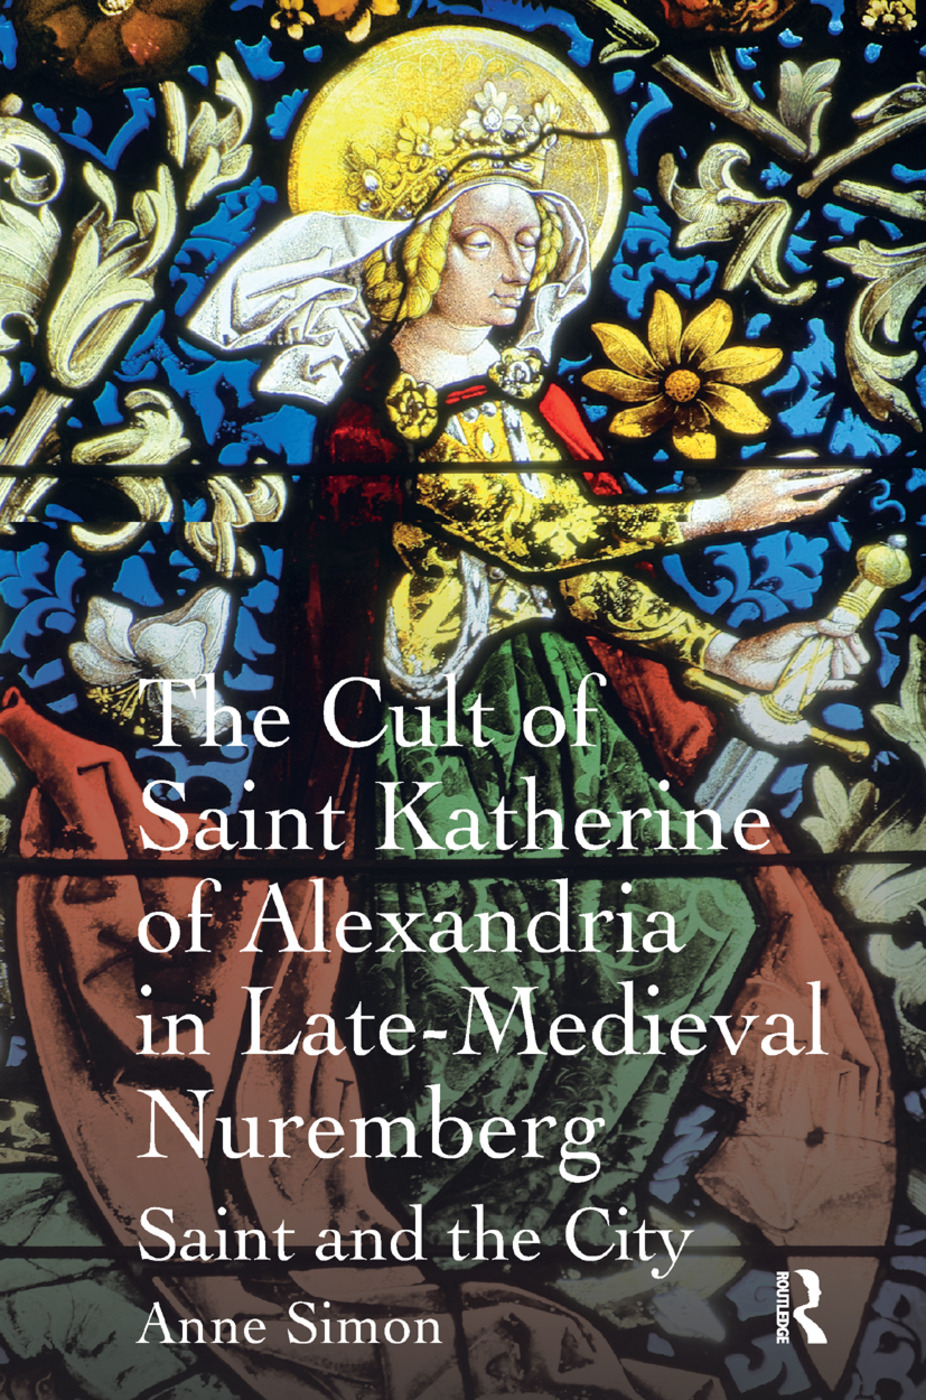 The Cult of Saint Katherine of Alexandria in Late-Medieval Nuremberg: Saint and the City book cover